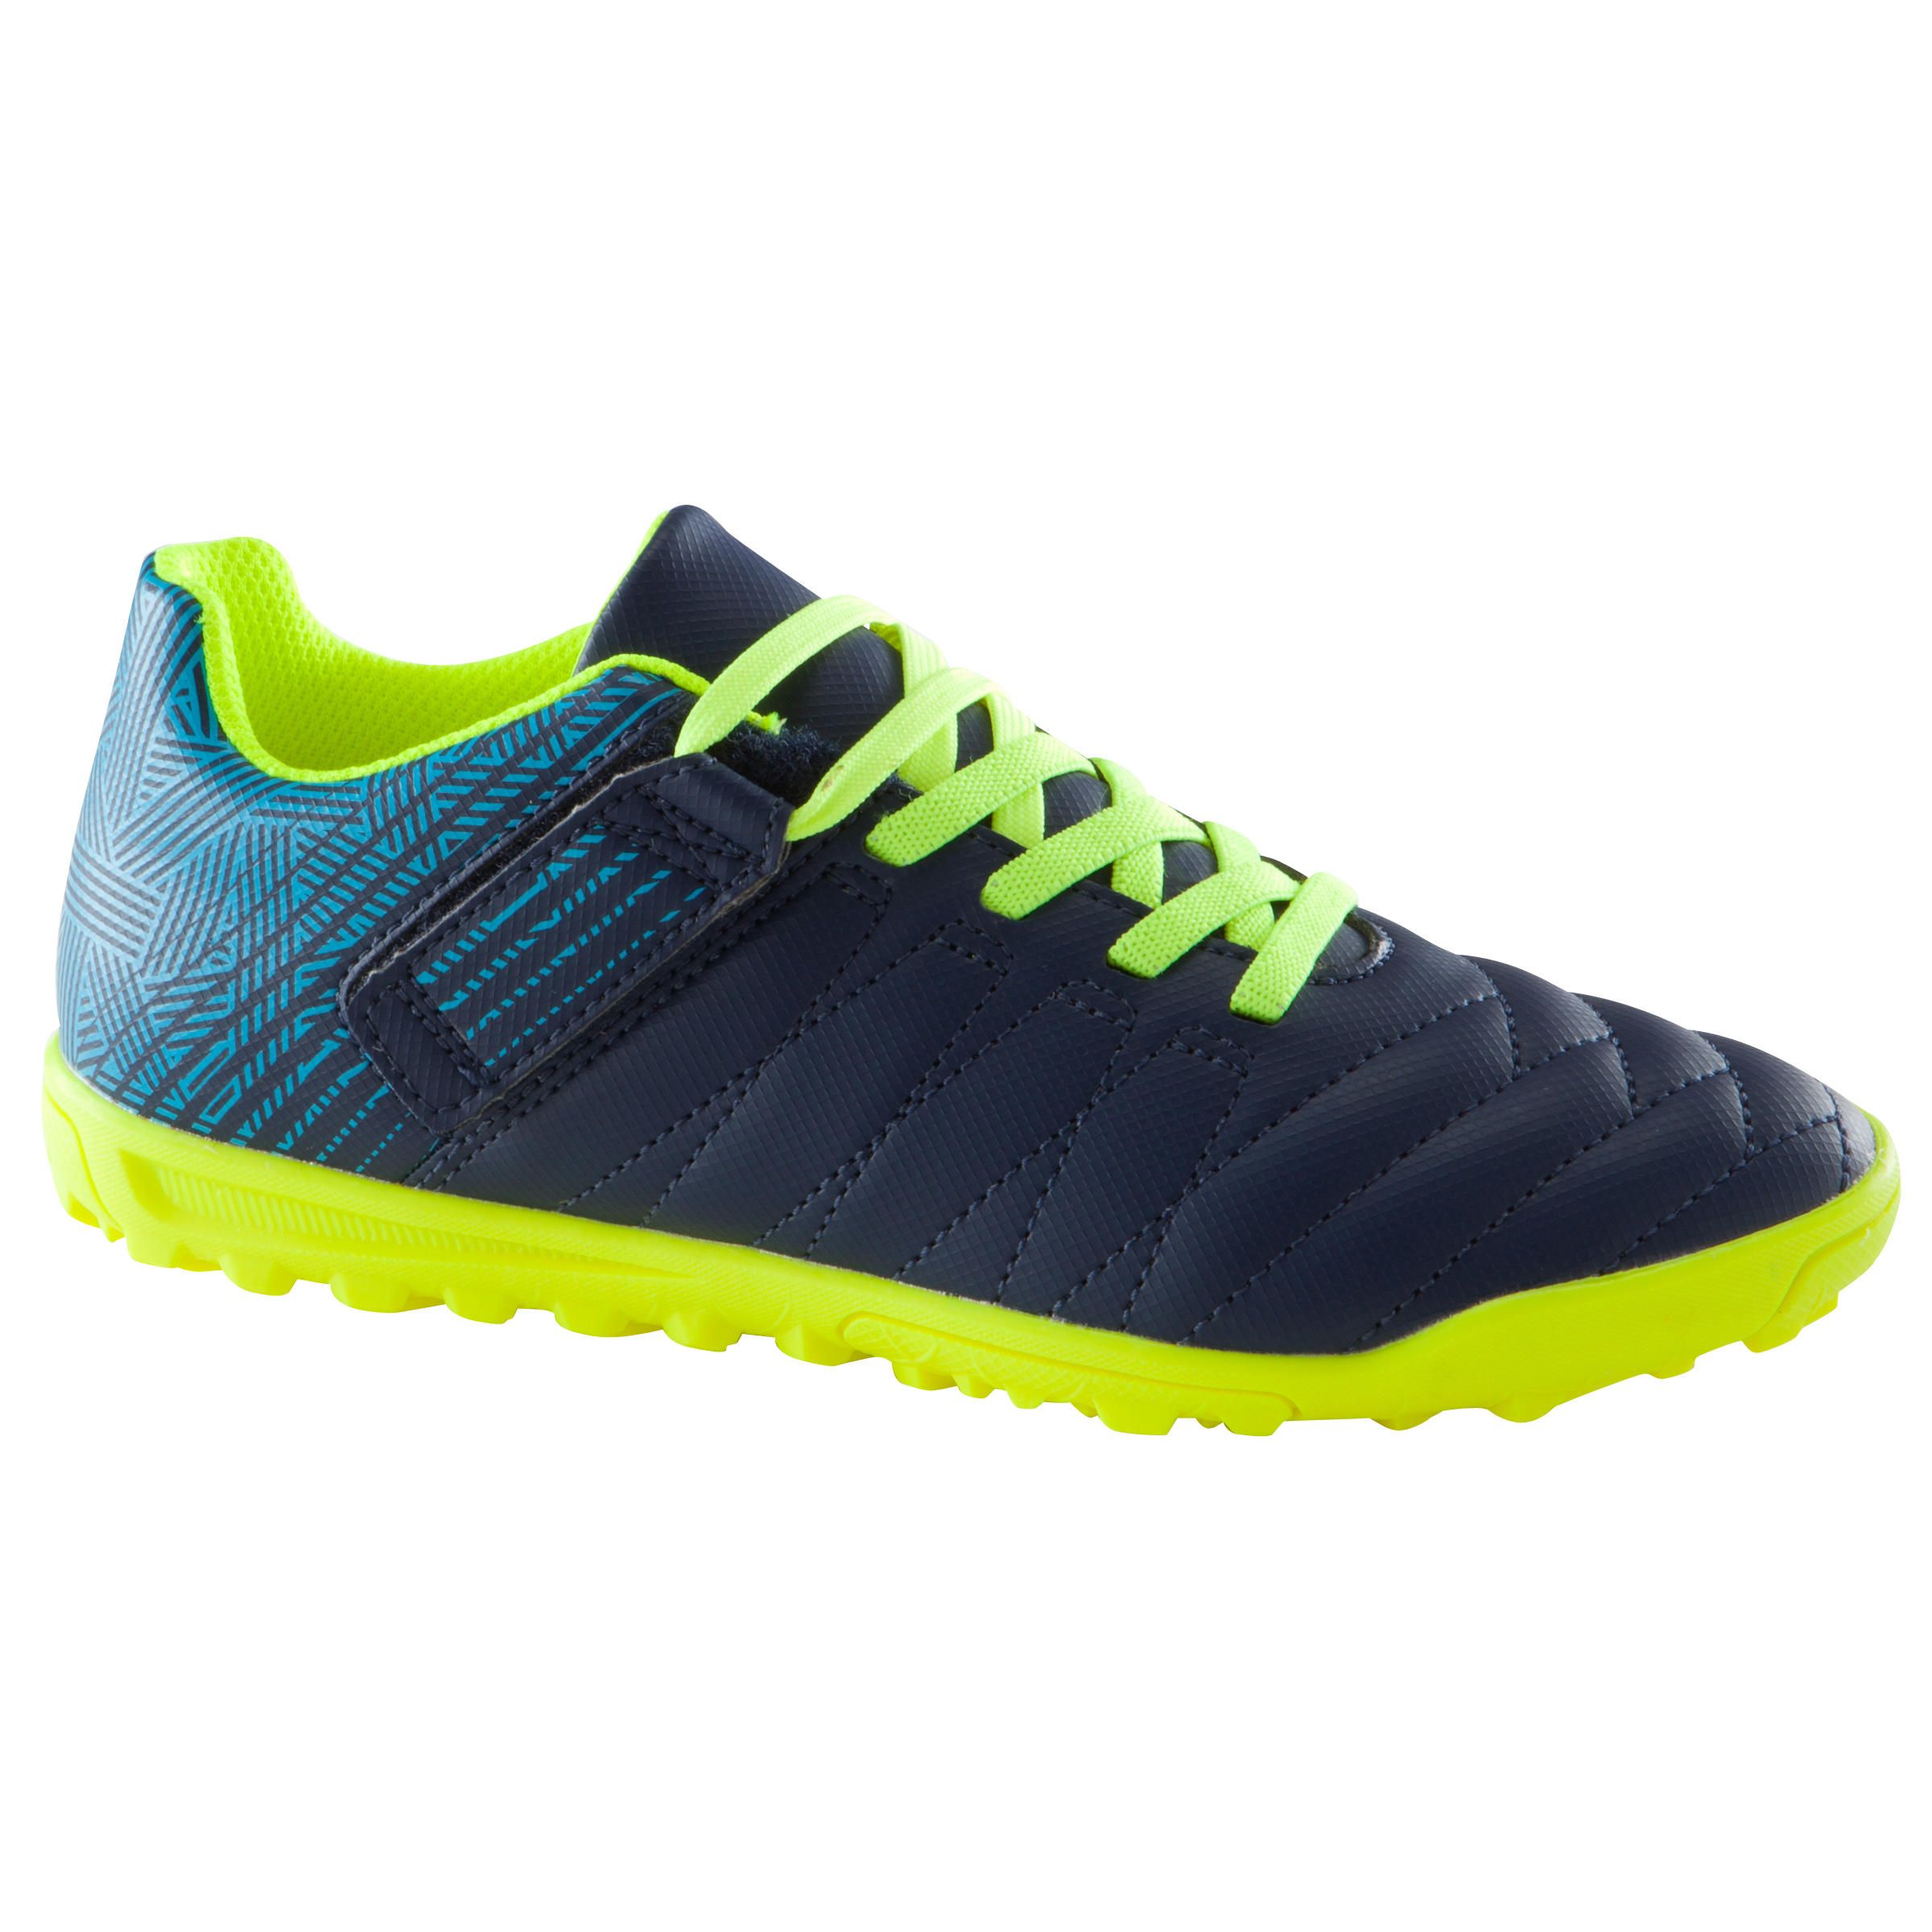 CLR 500 HG Kids' Hard Pitch Soccer Cleats With Rip-Tab - Blue/Yellow